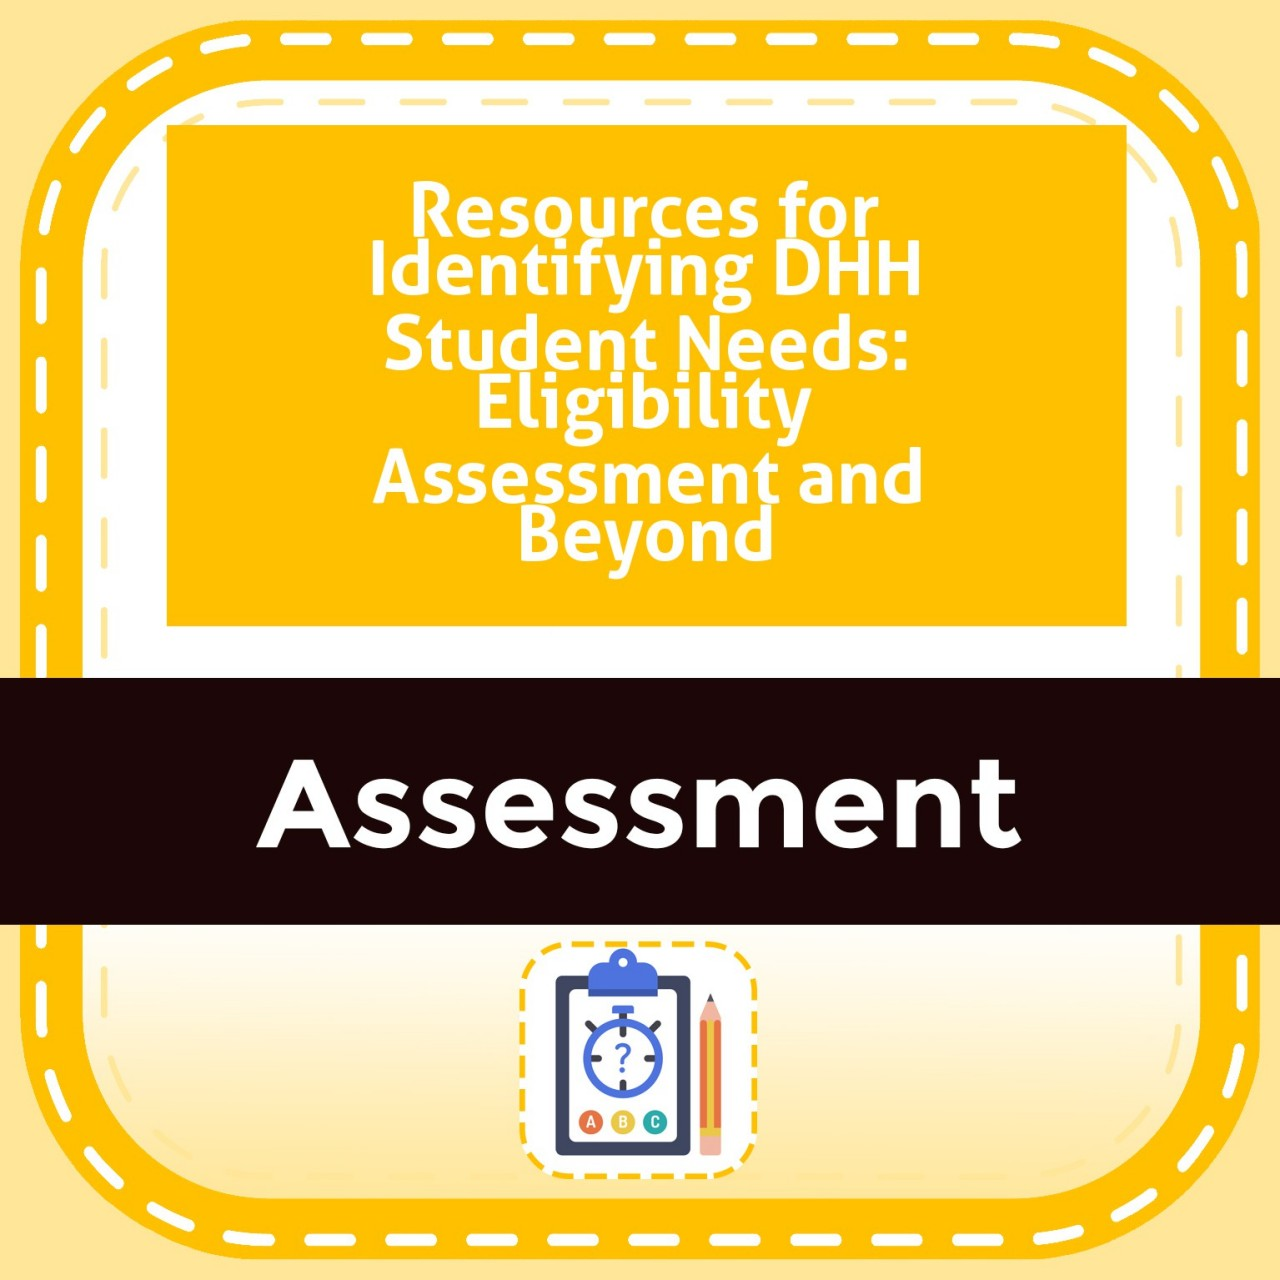 Resources for Identifying DHH Student Needs: Eligibility Assessment and Beyond